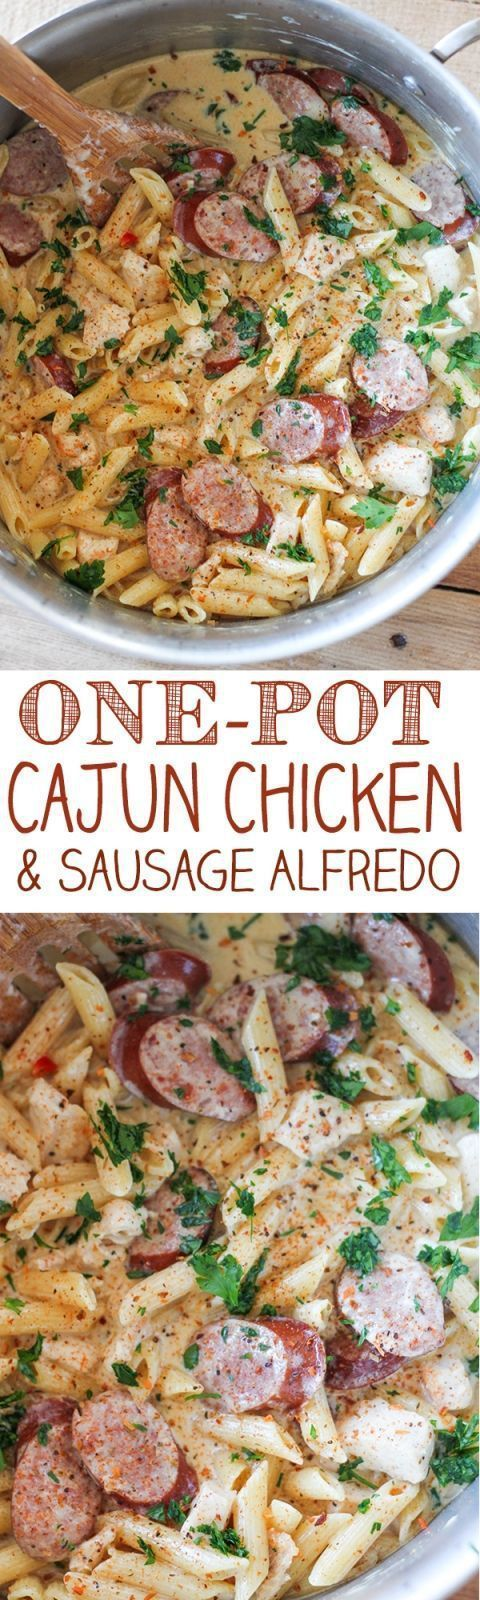 One-Pot Cajun Chicken and Sausage Alfredo Pasta Recipe | No. 2 Pencil - The Best Easy One Pot Pasta Family Dinner Recipes